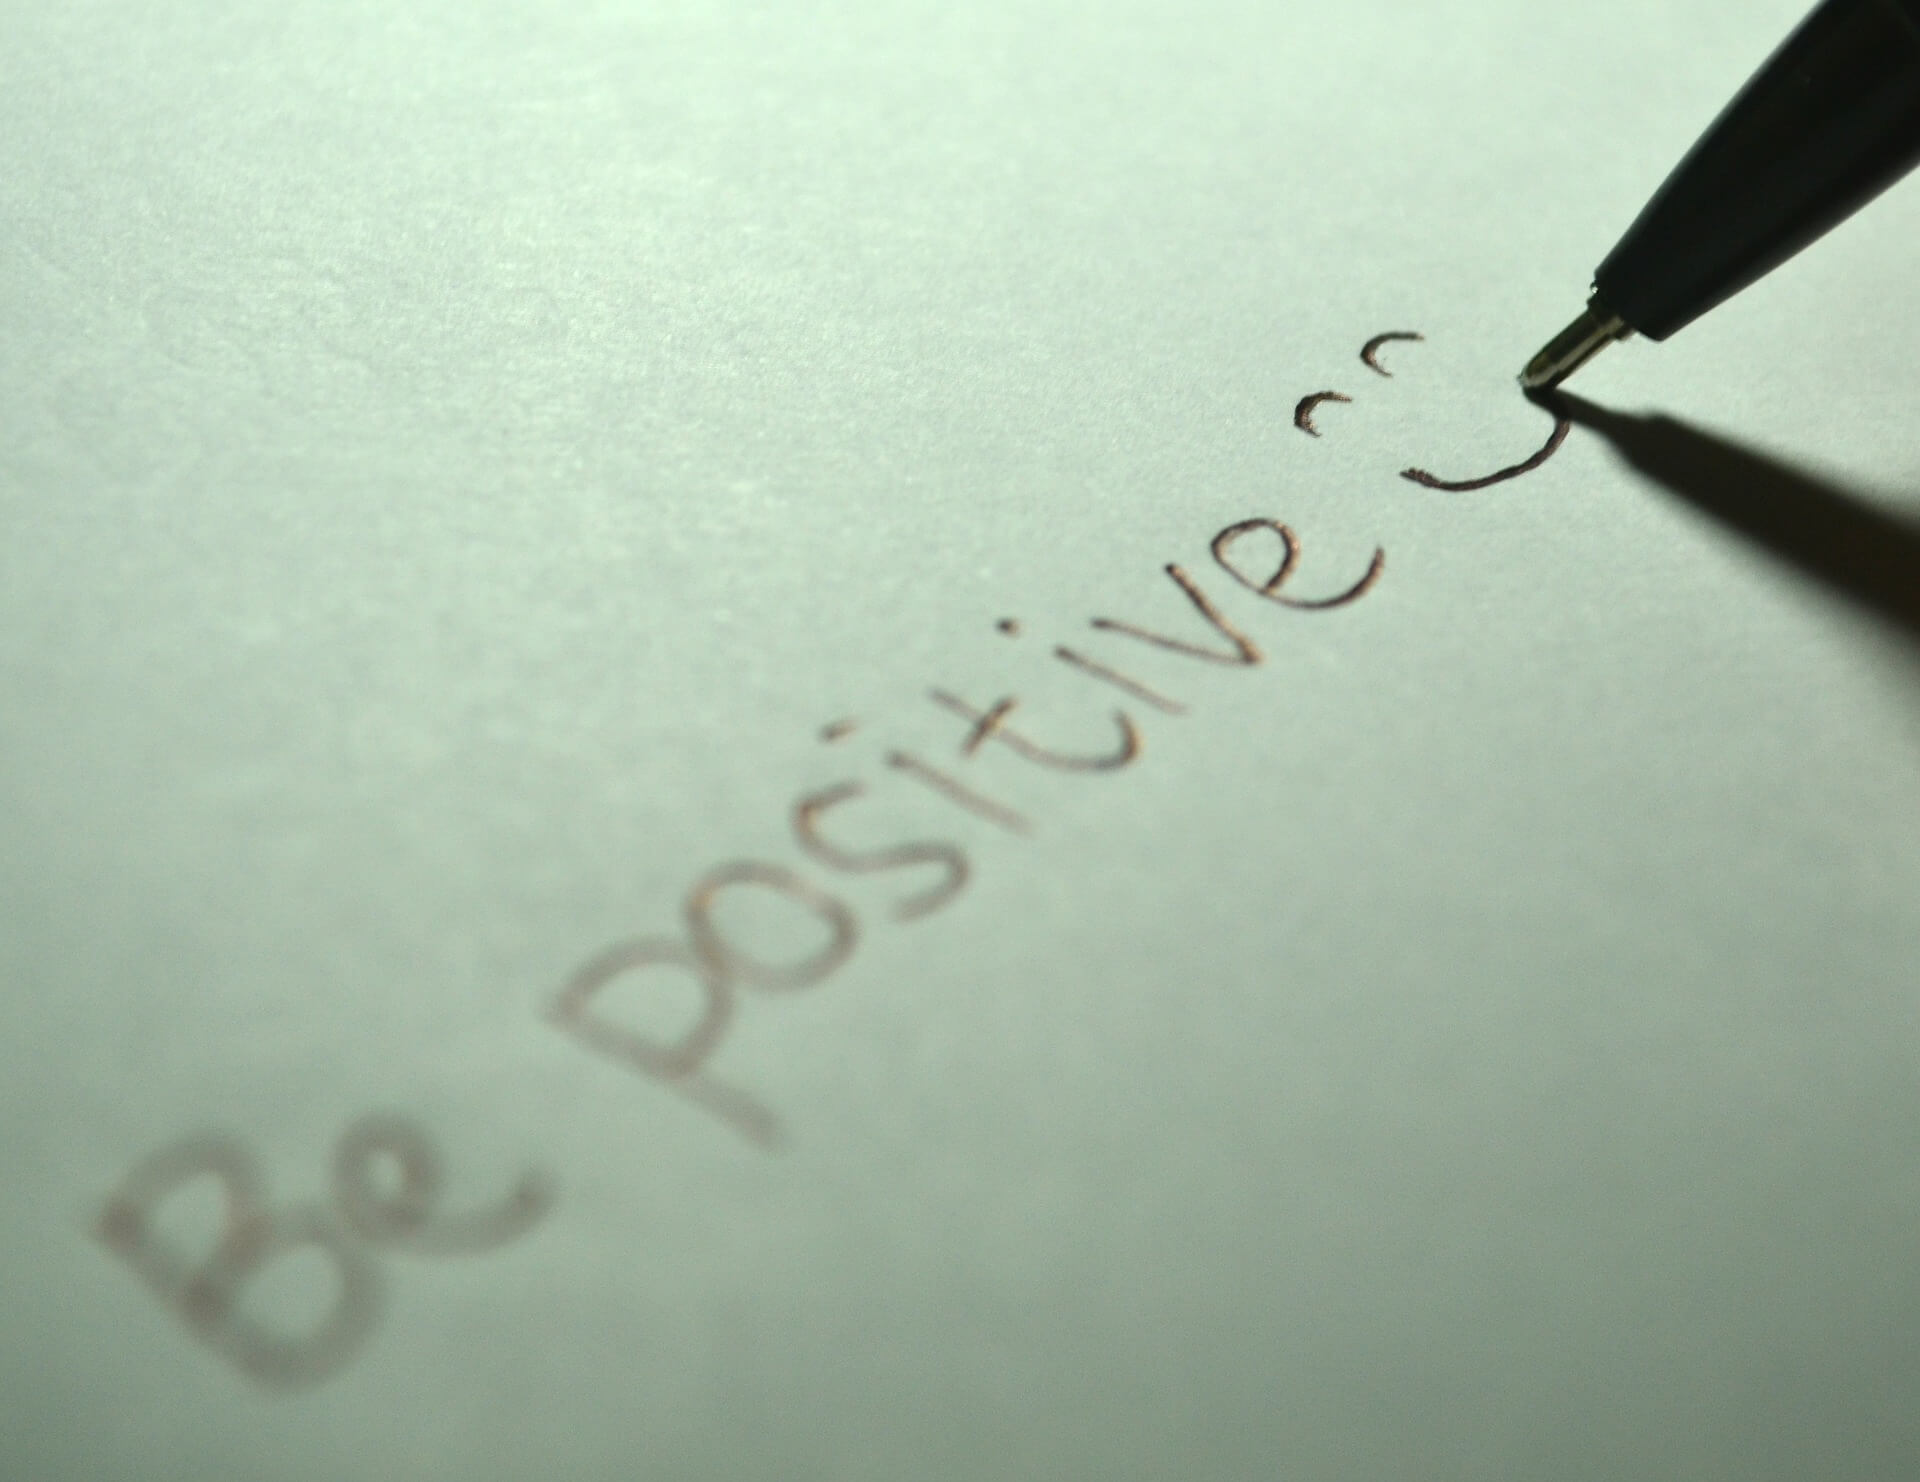 Is Positive Thinking Your Key Personal Business Tool?